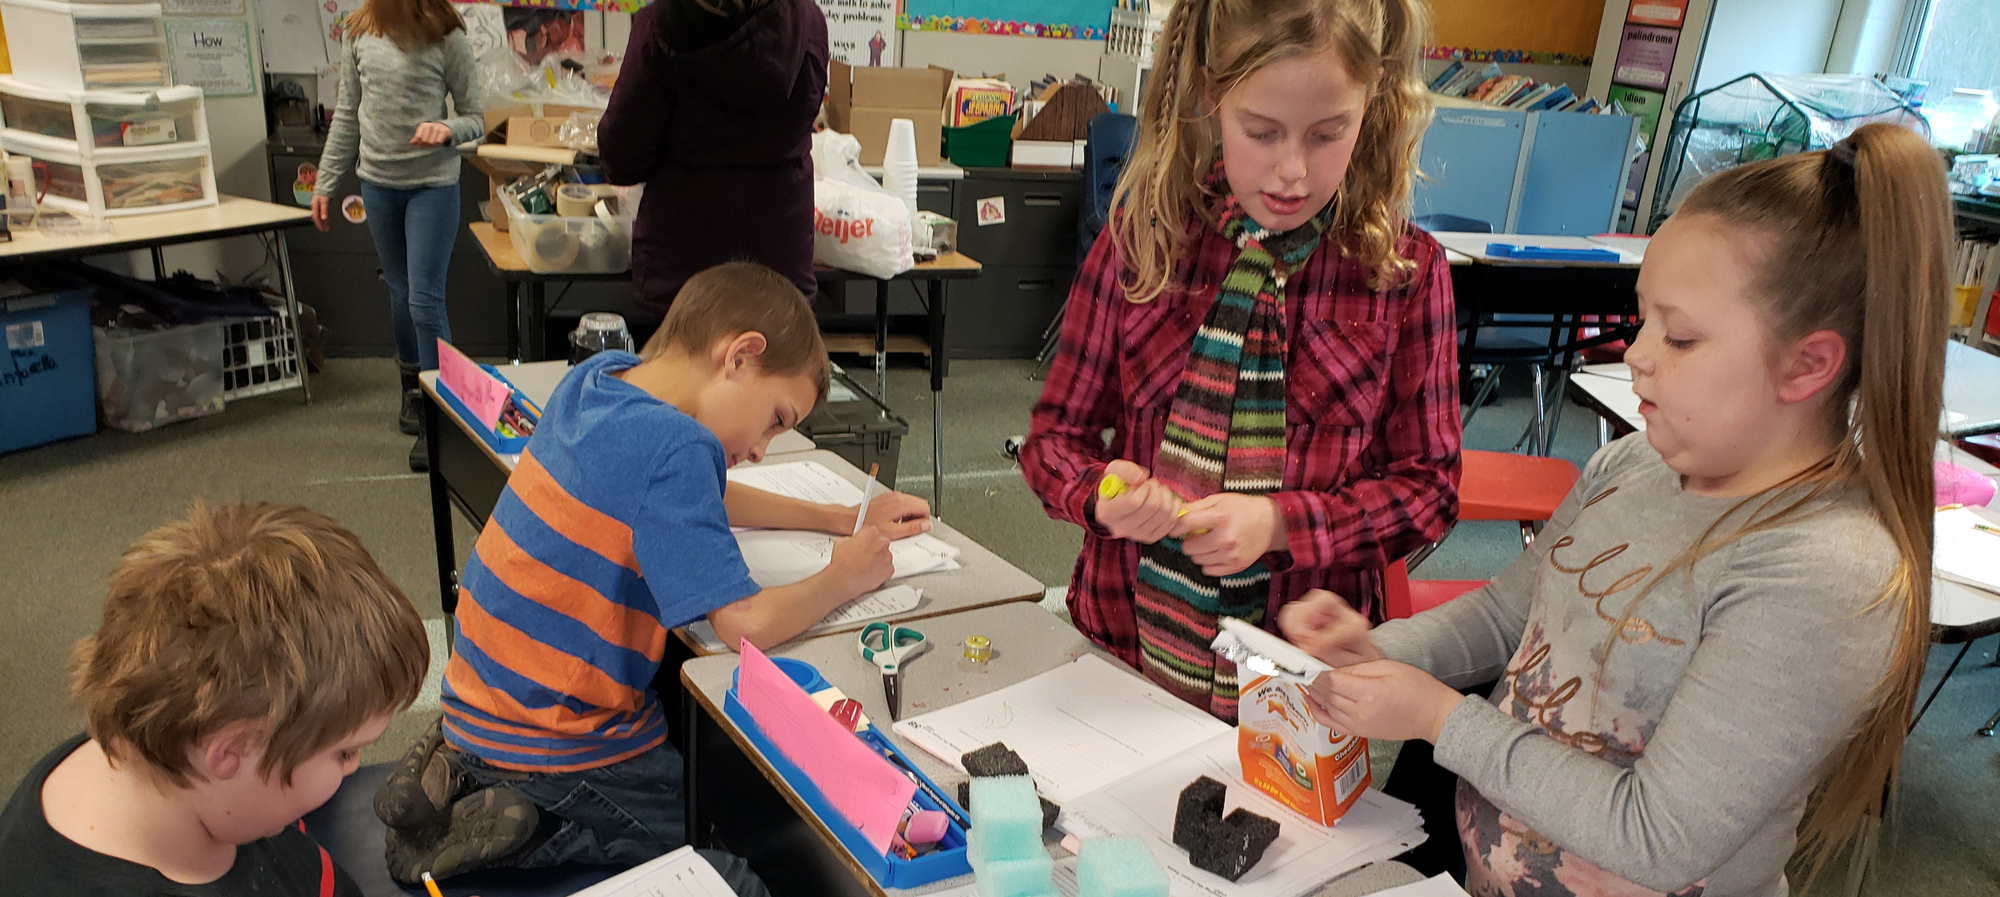 Students working in classroom on a project